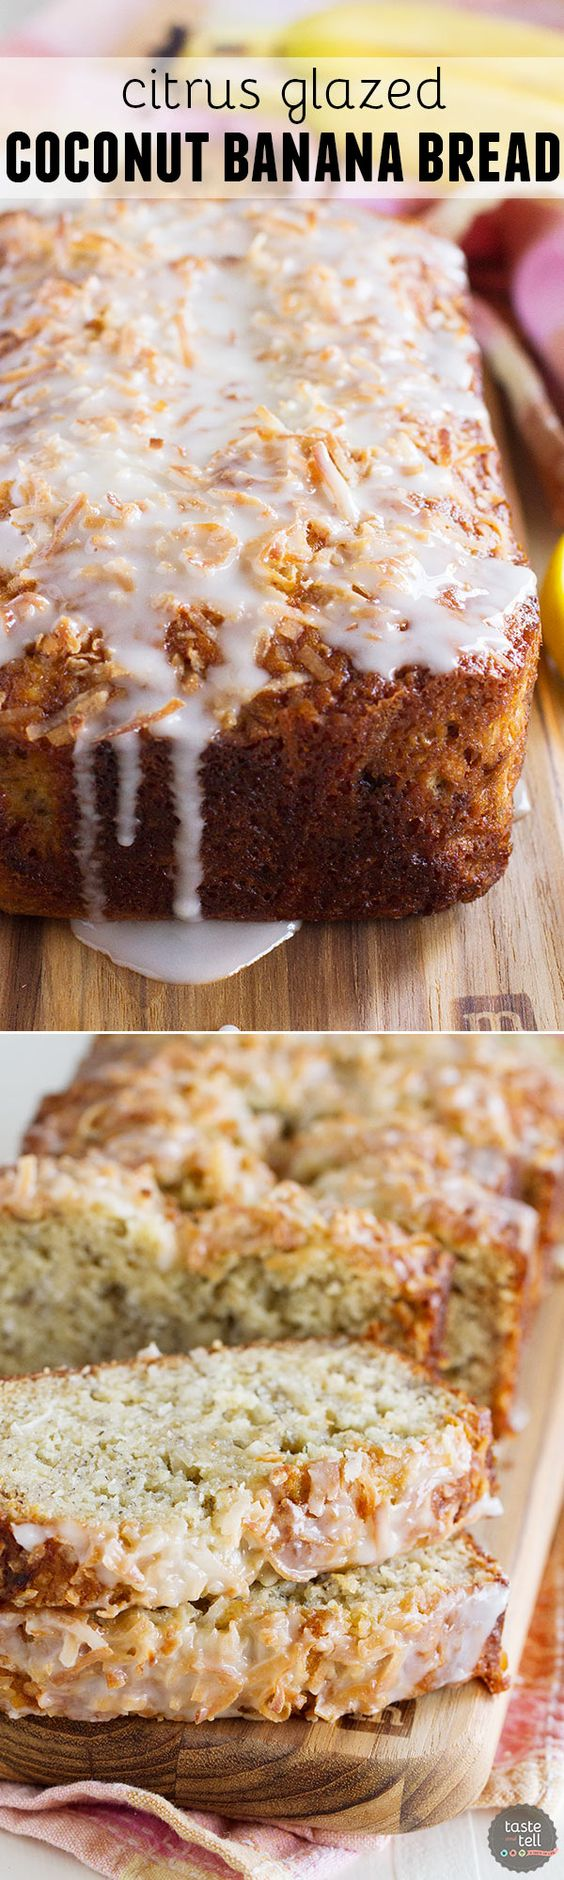 Coconut Lemon Banana Bread Recipe — Dishmaps